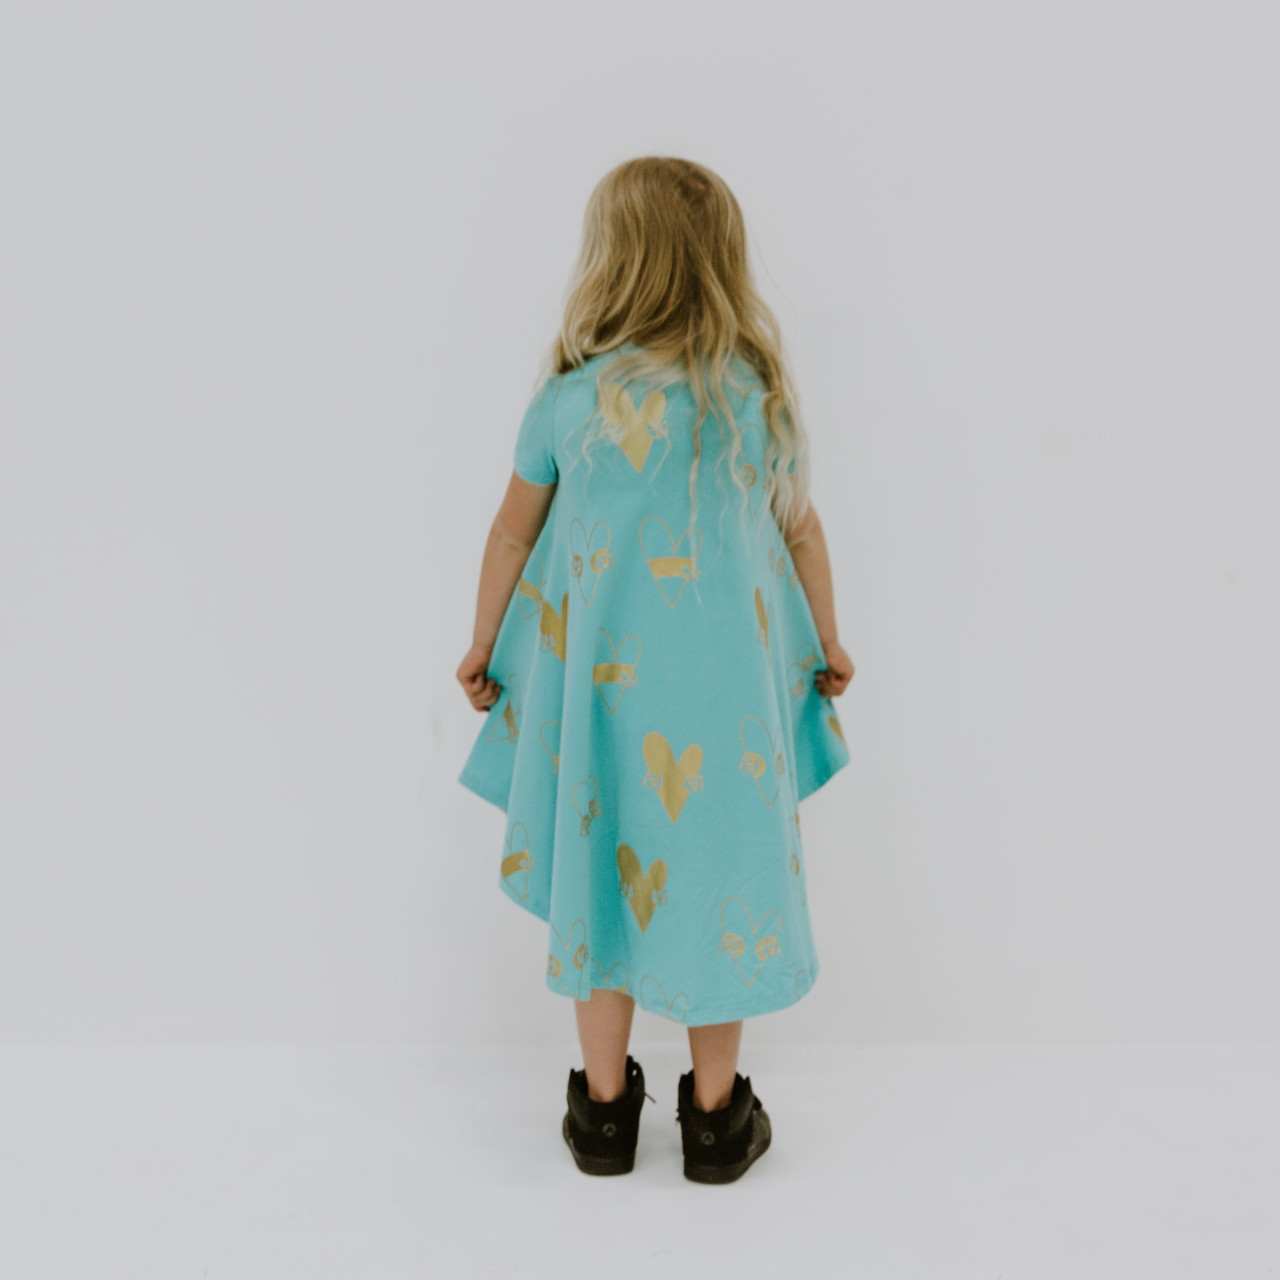 Amazing dress with metallic gold heart print by Punk Baby